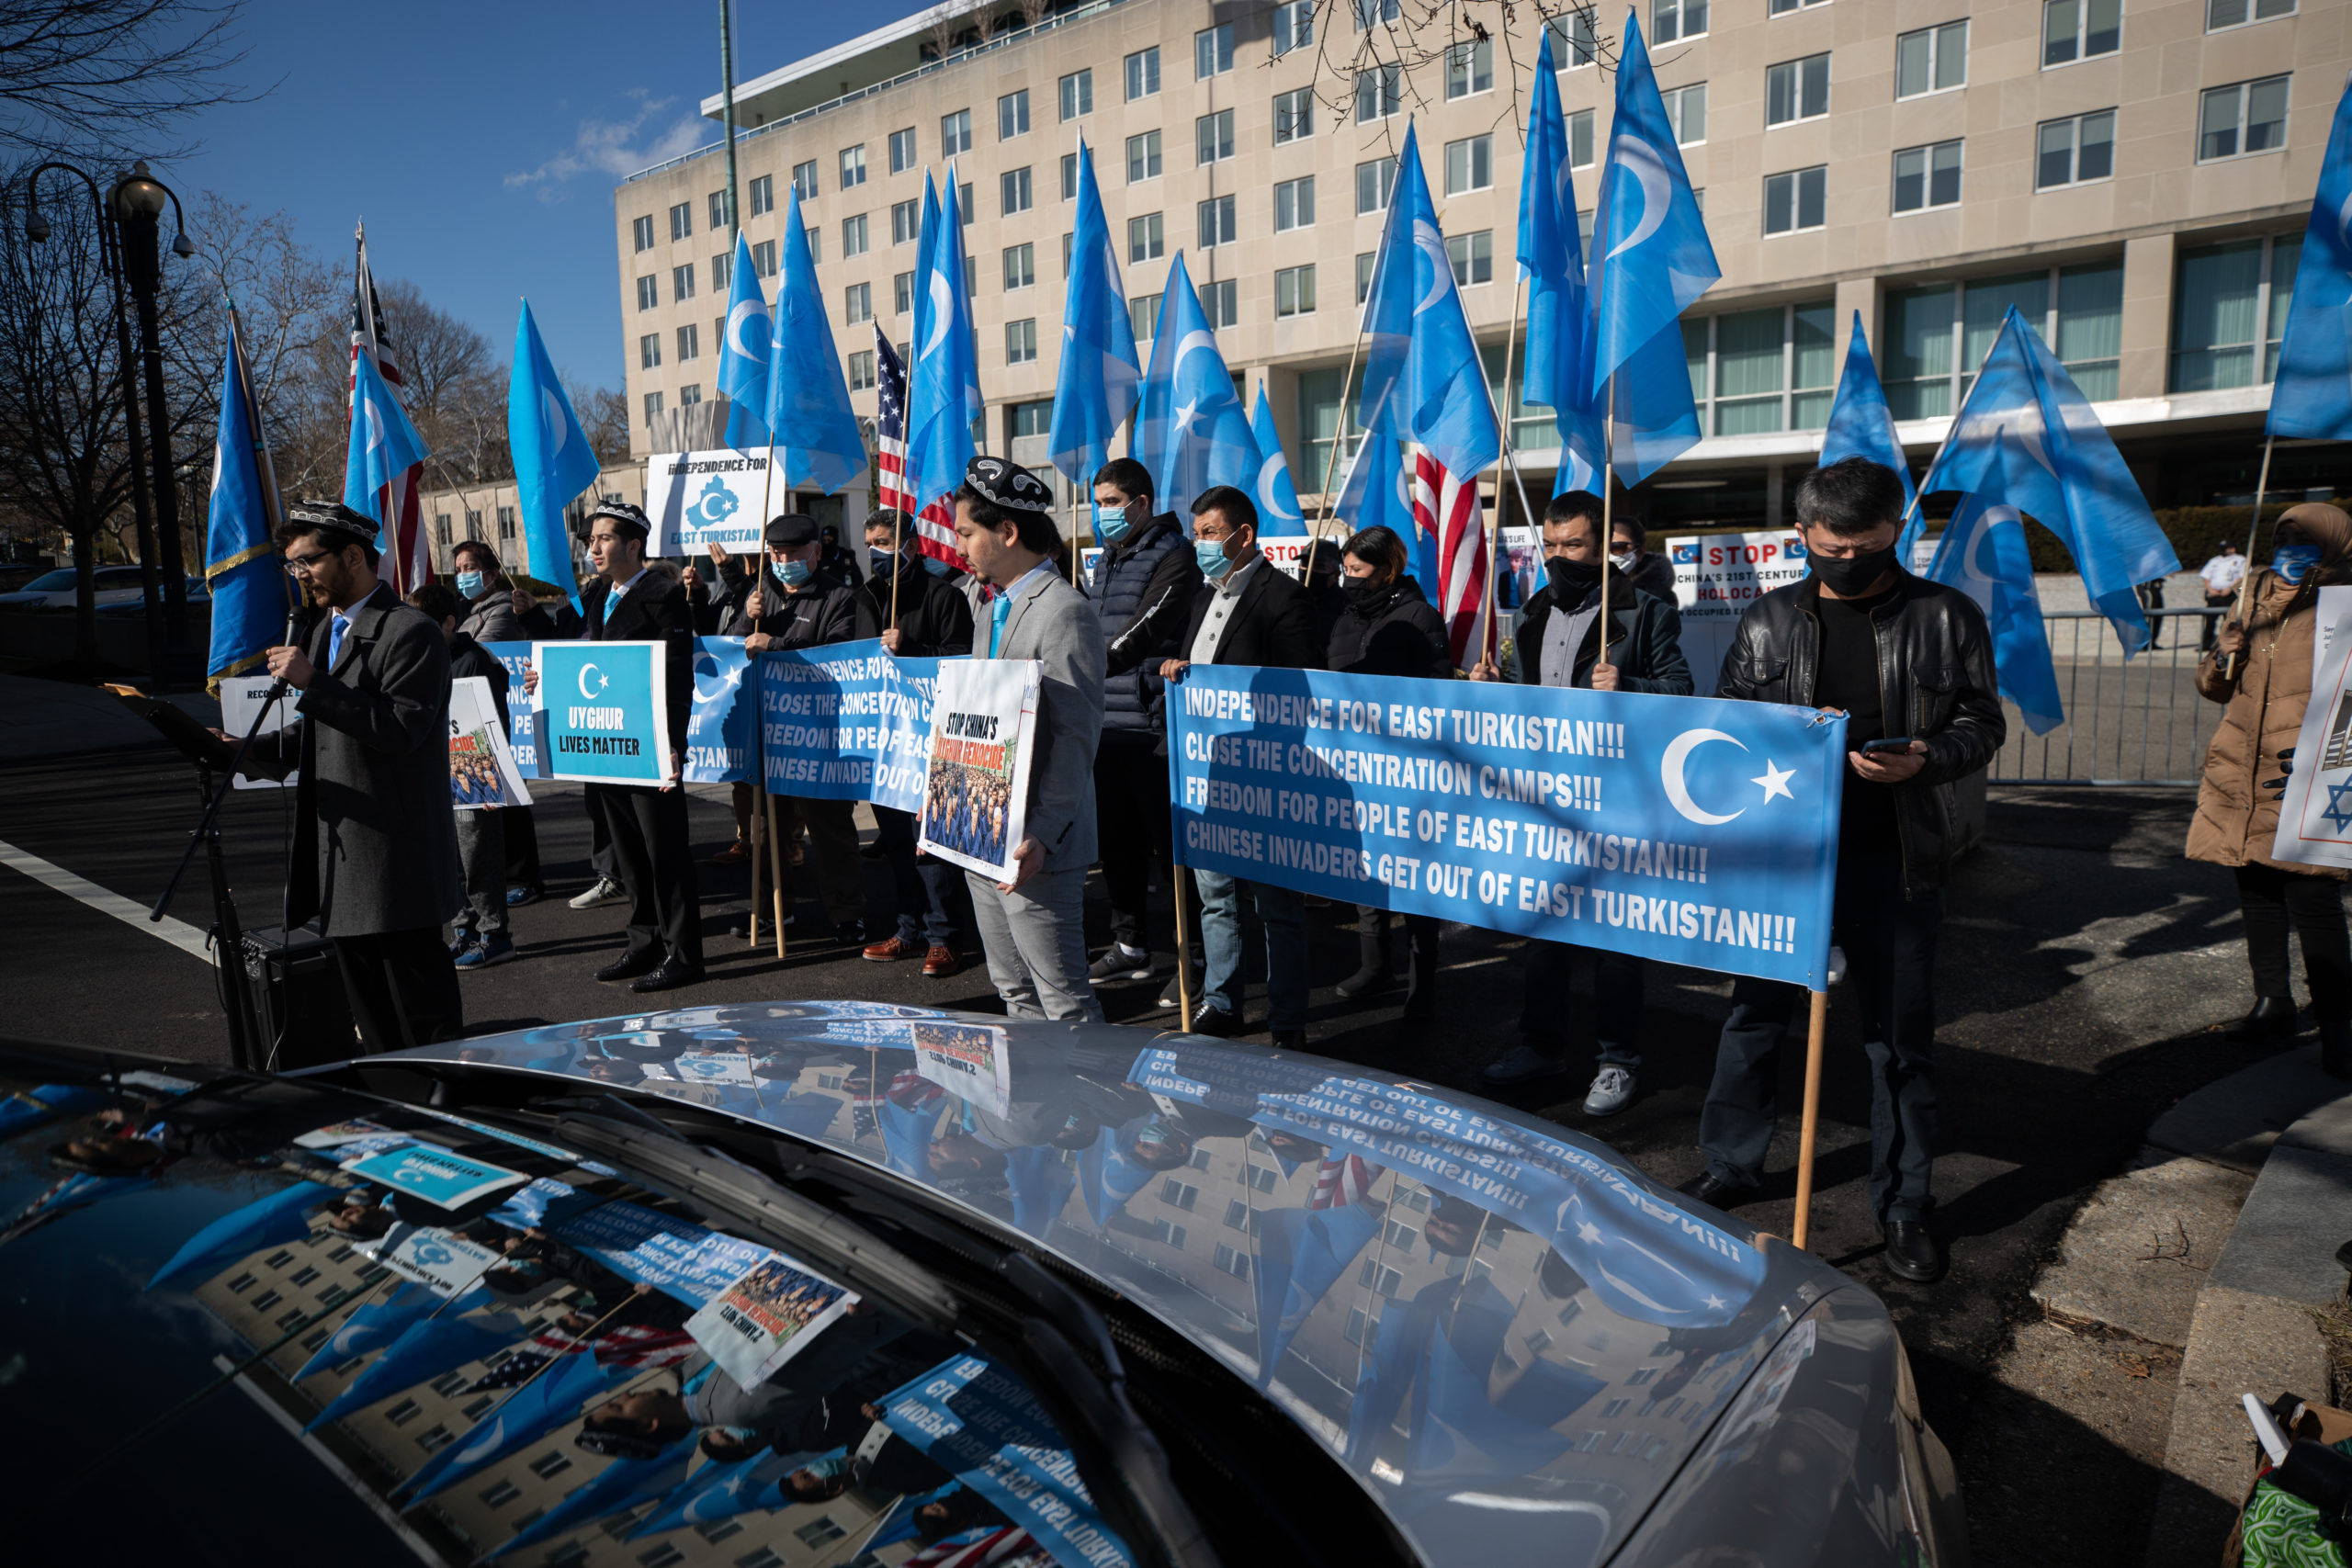 Uighurs protested against the upcoming Beijing Olympics and asked the U.S. government to continue helping the Uighur people in Xinjiang, Chia, outside the State Department in Washington, D.C. on Feb. 5, 2020.